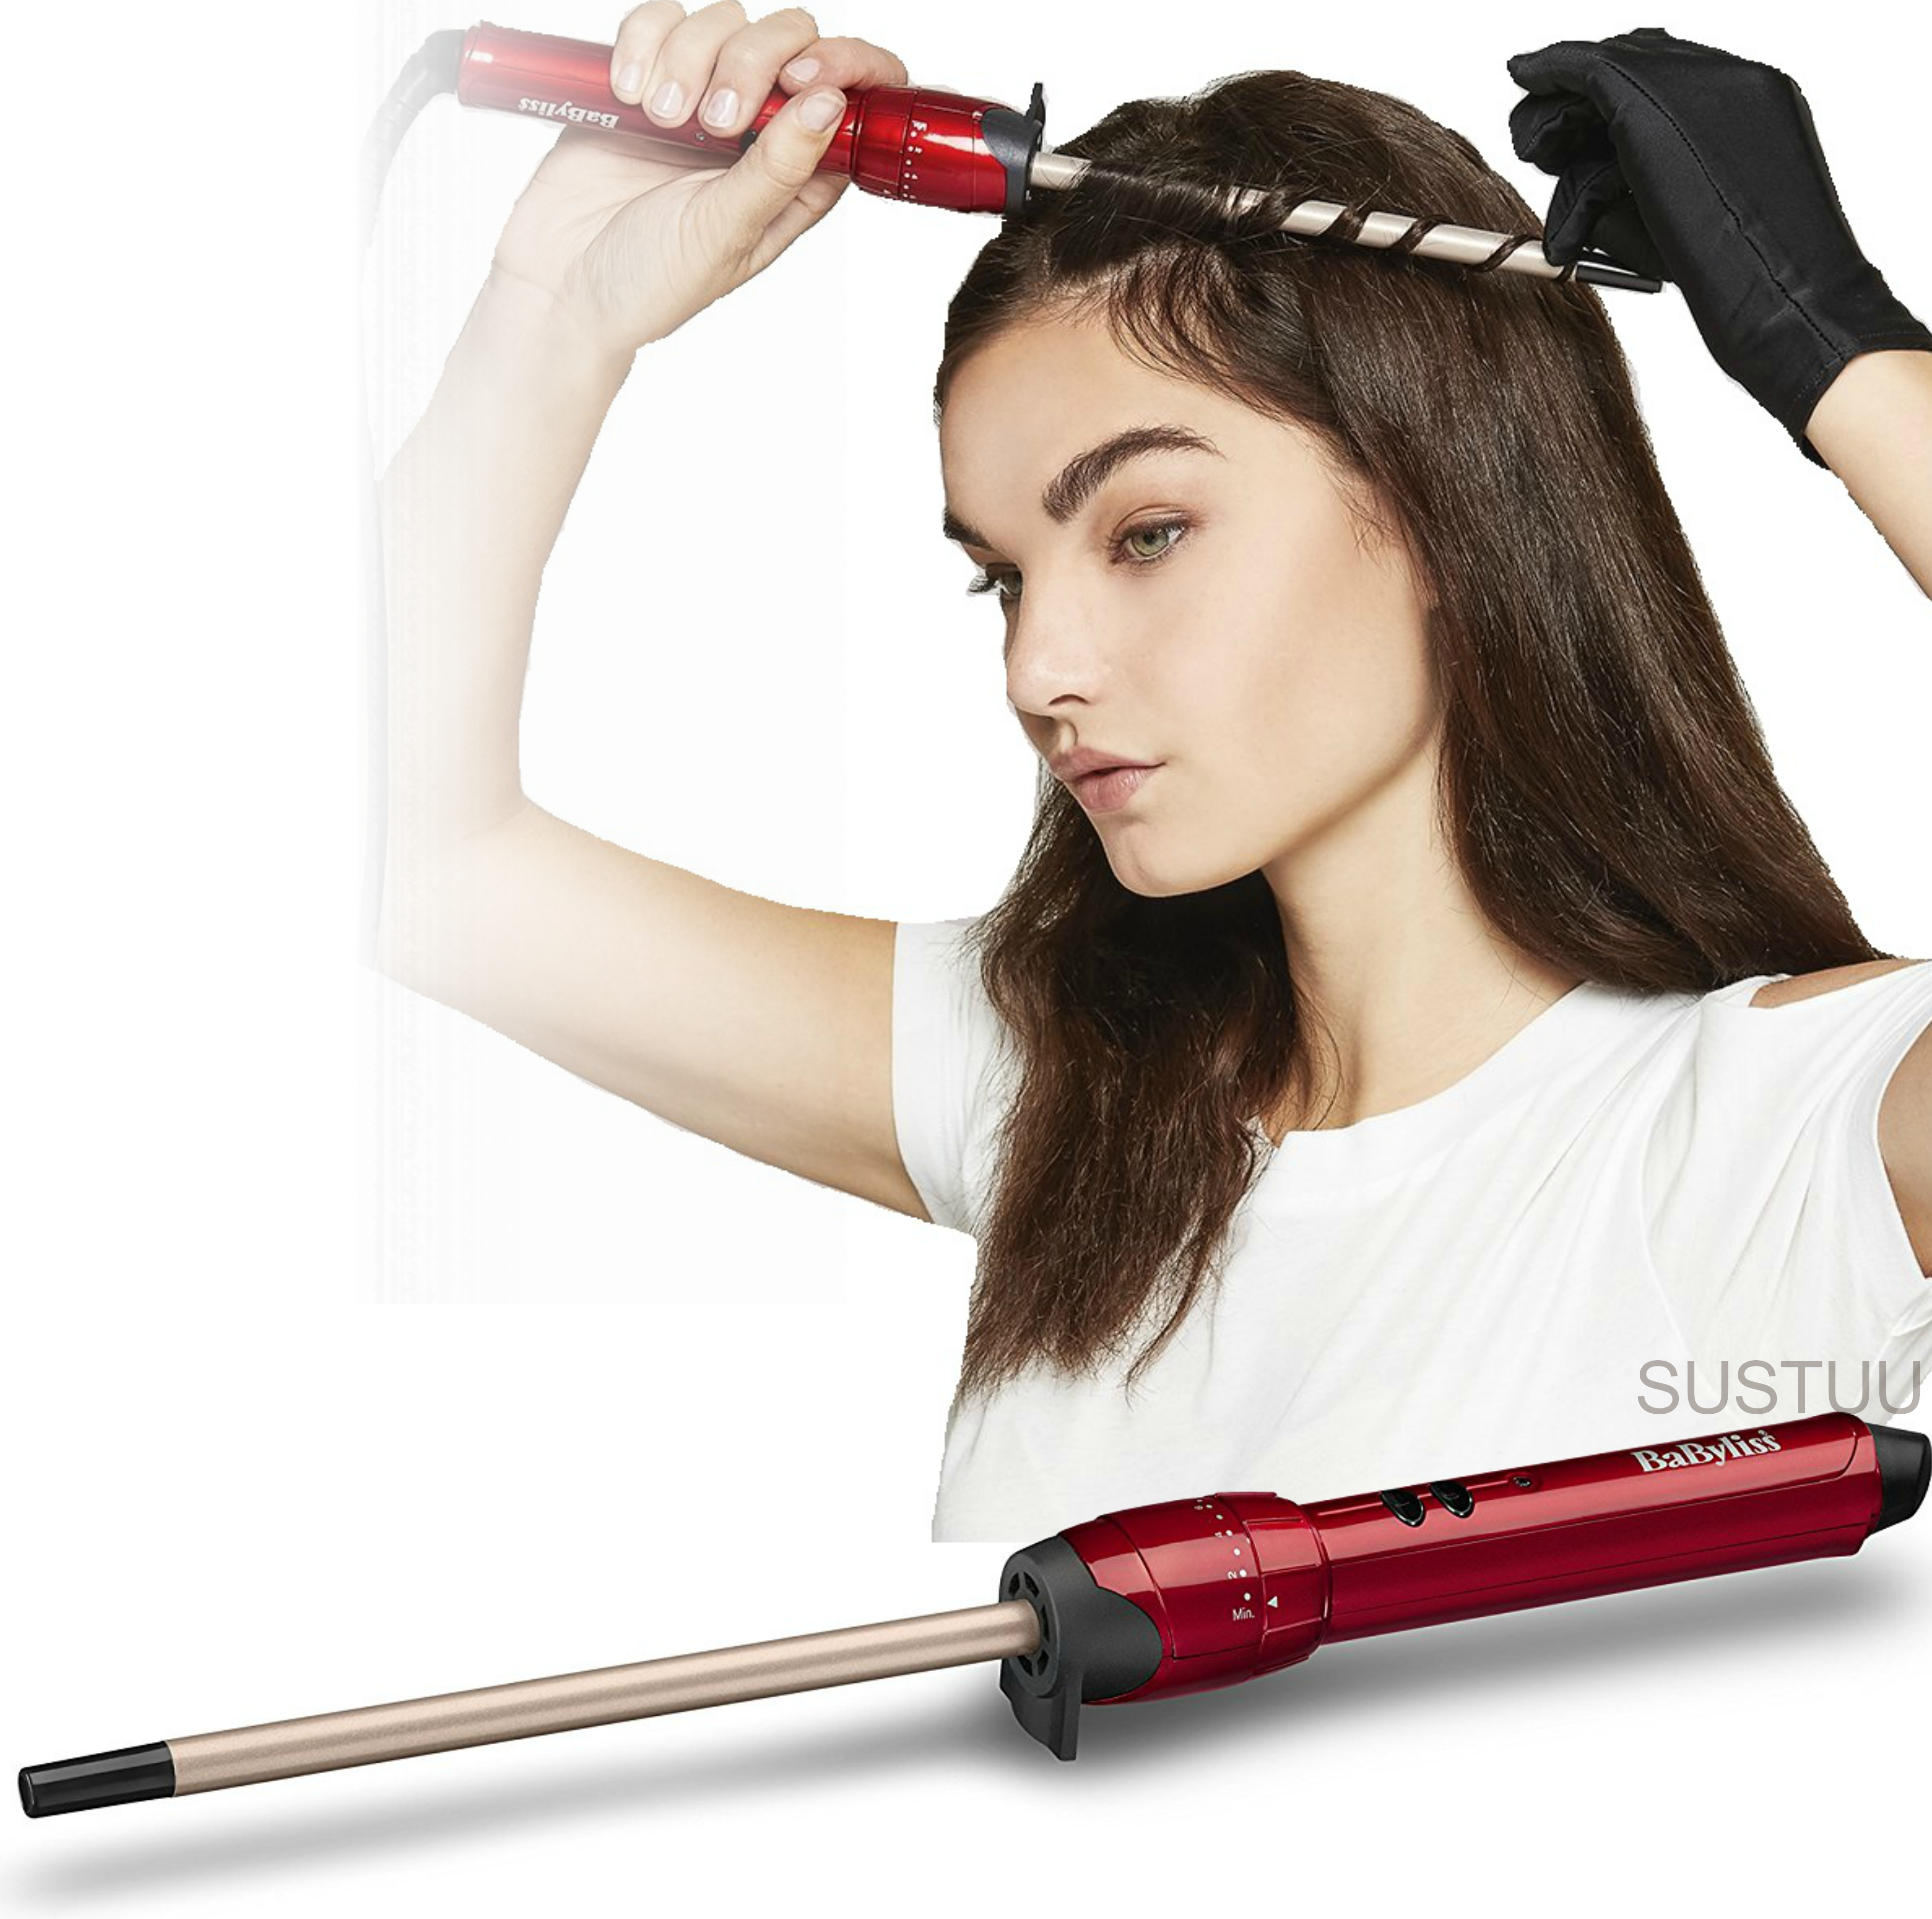 Babyliss 2385U Tight Curls Wand Hair Styler|Extra Long|Ultra Slim|10mm Barrel|